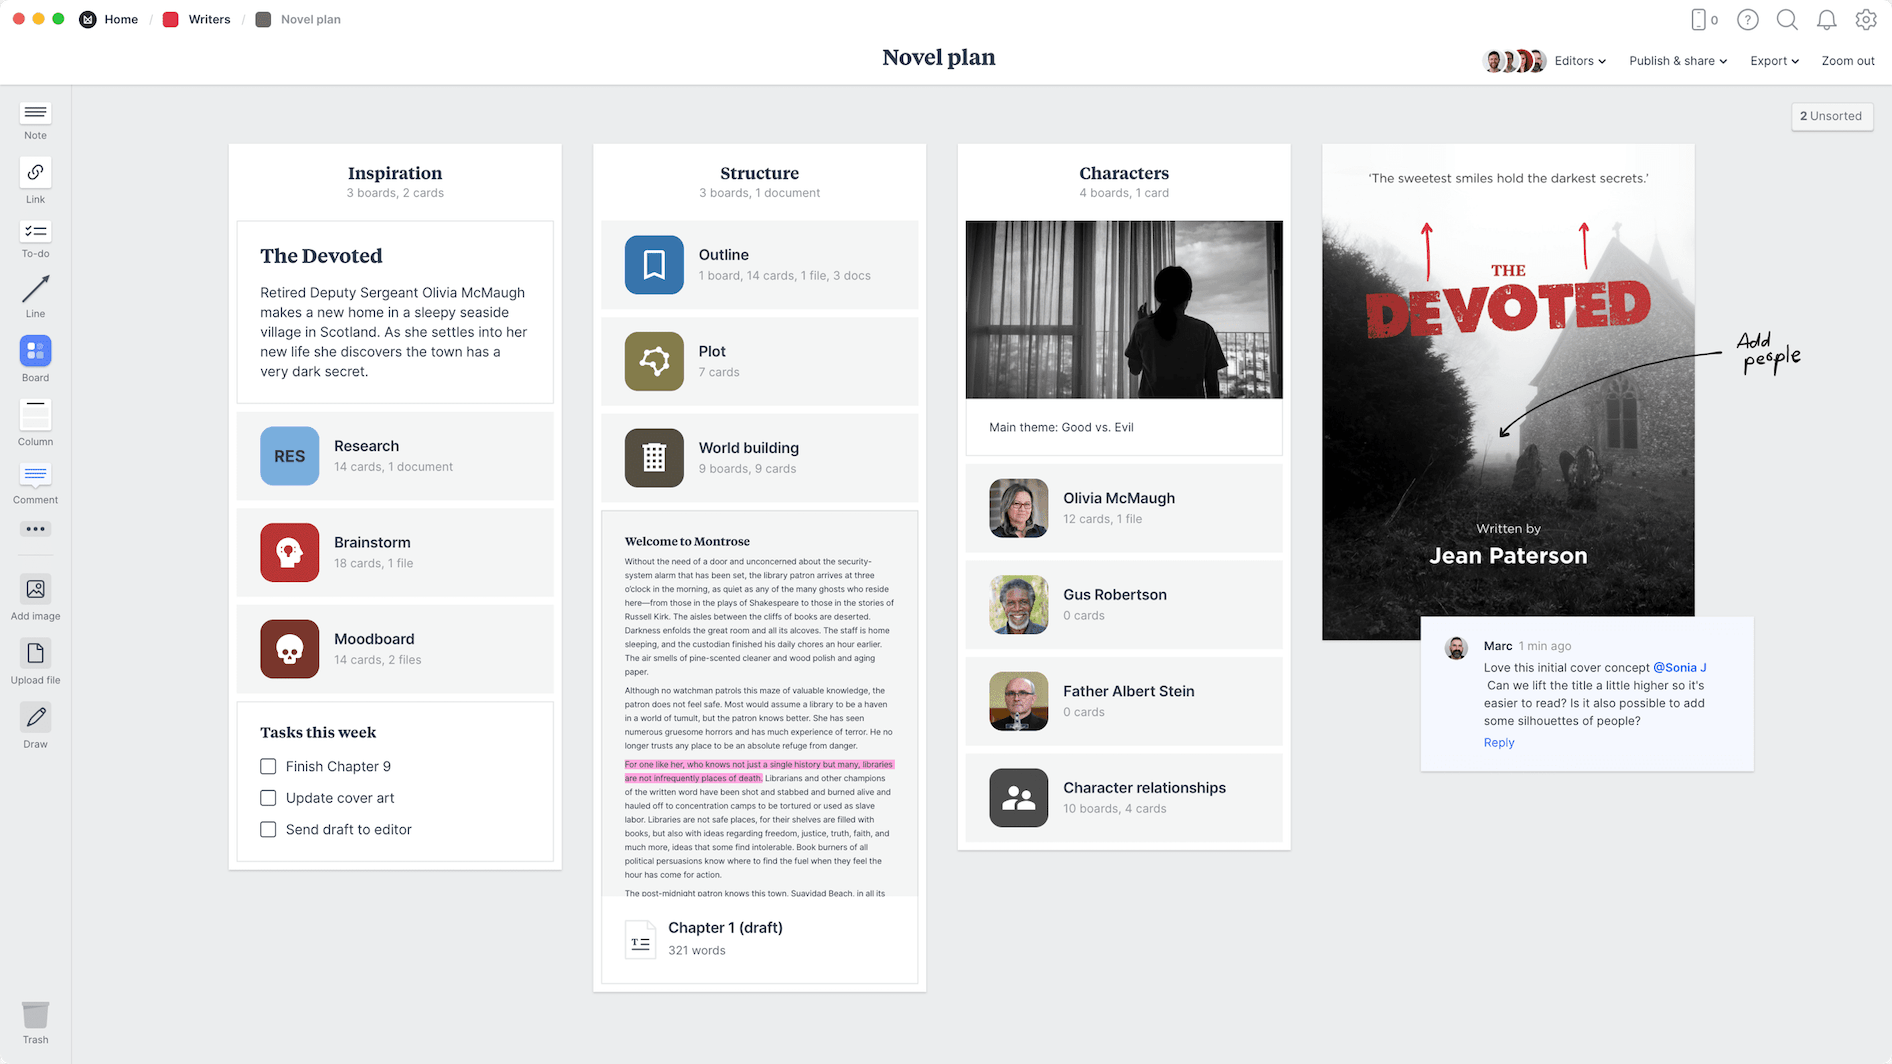 Novel Plan Template, within the Milanote app